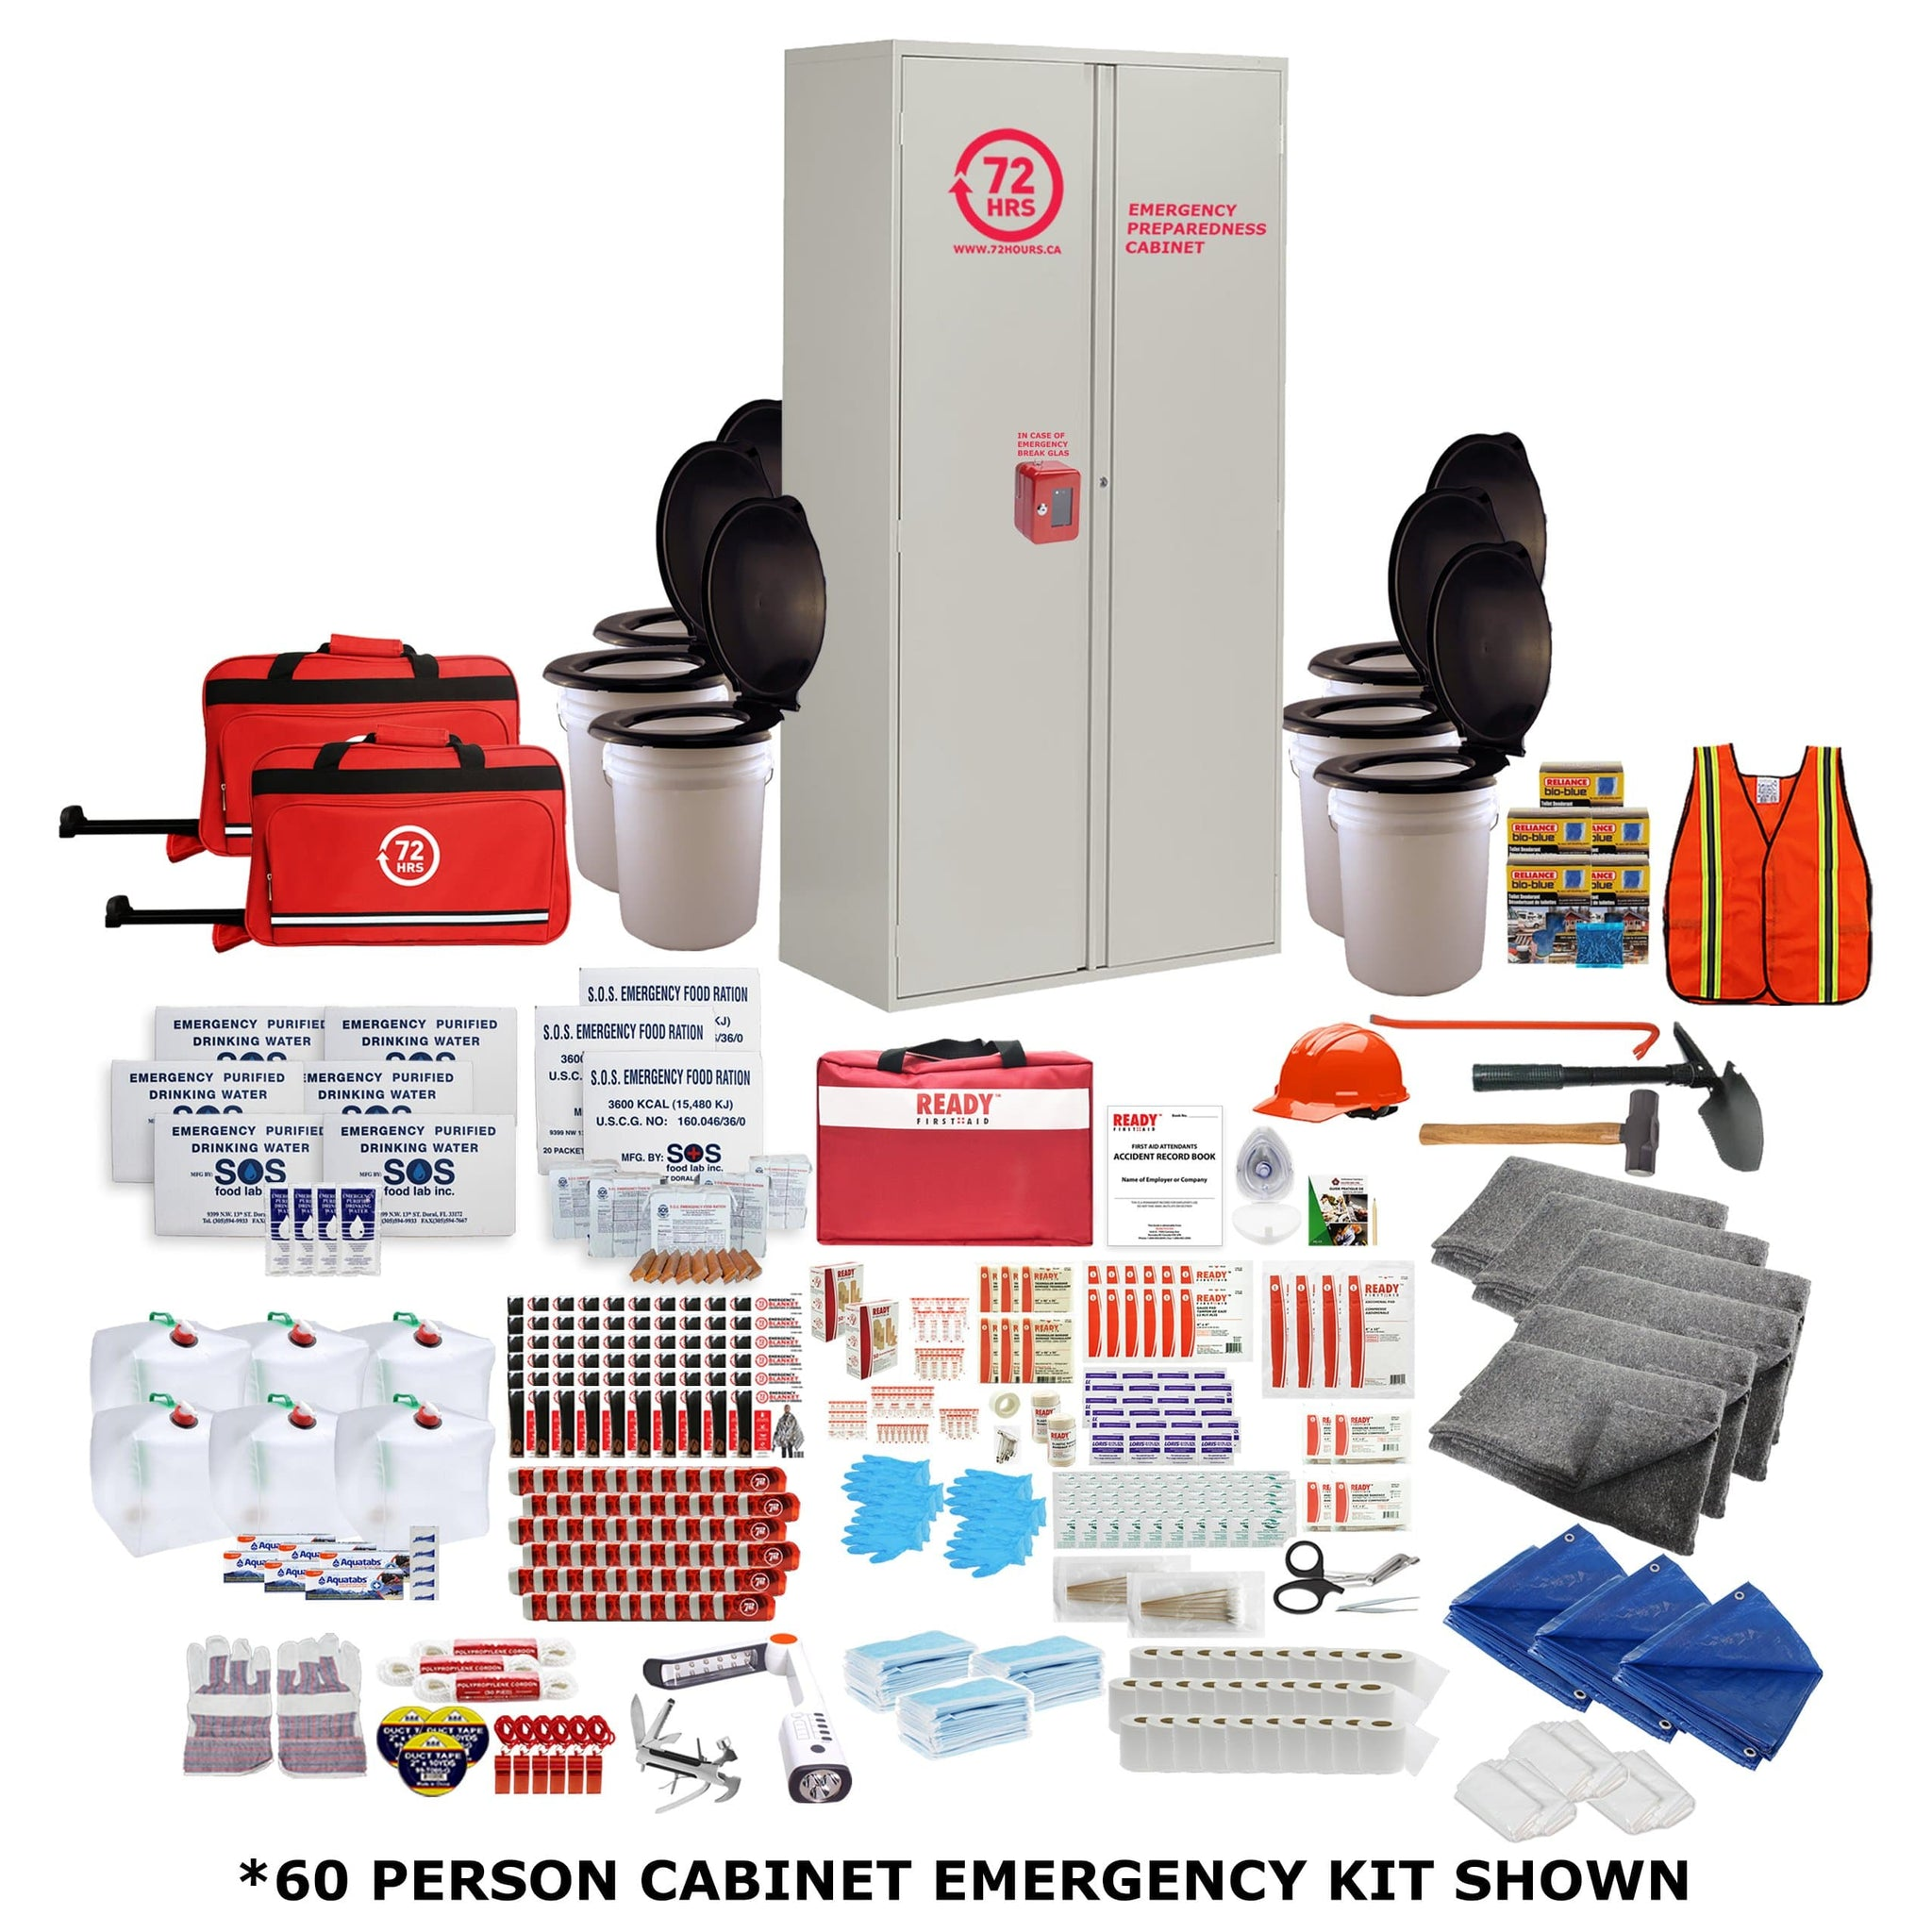 72HRS 60 people emergency cabinet kit shown with contents laid ouside of cabinet